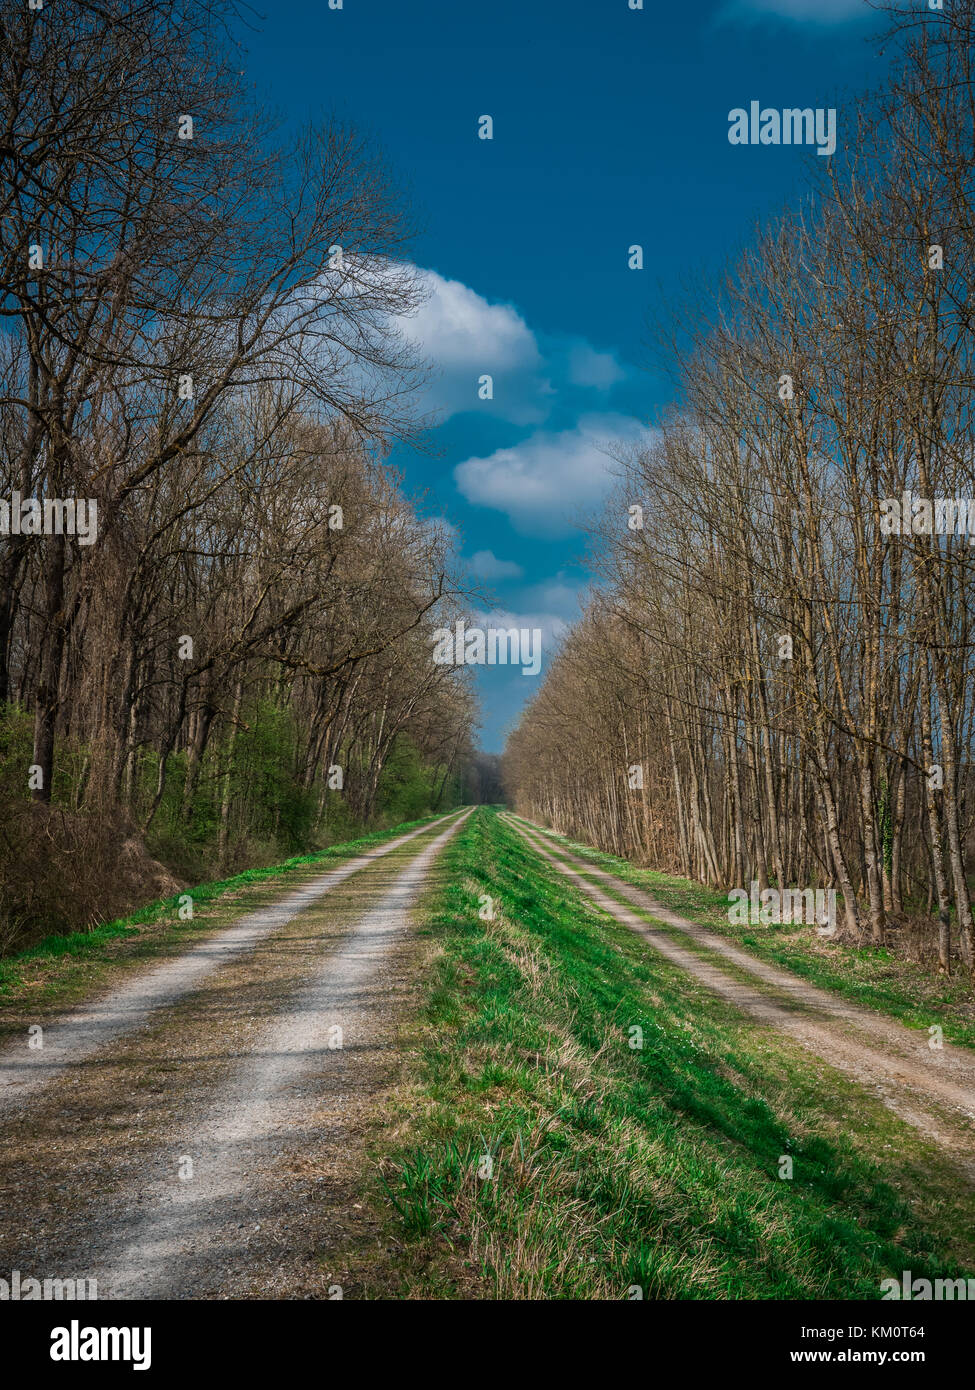 two parallel paths in spring - Stock Image